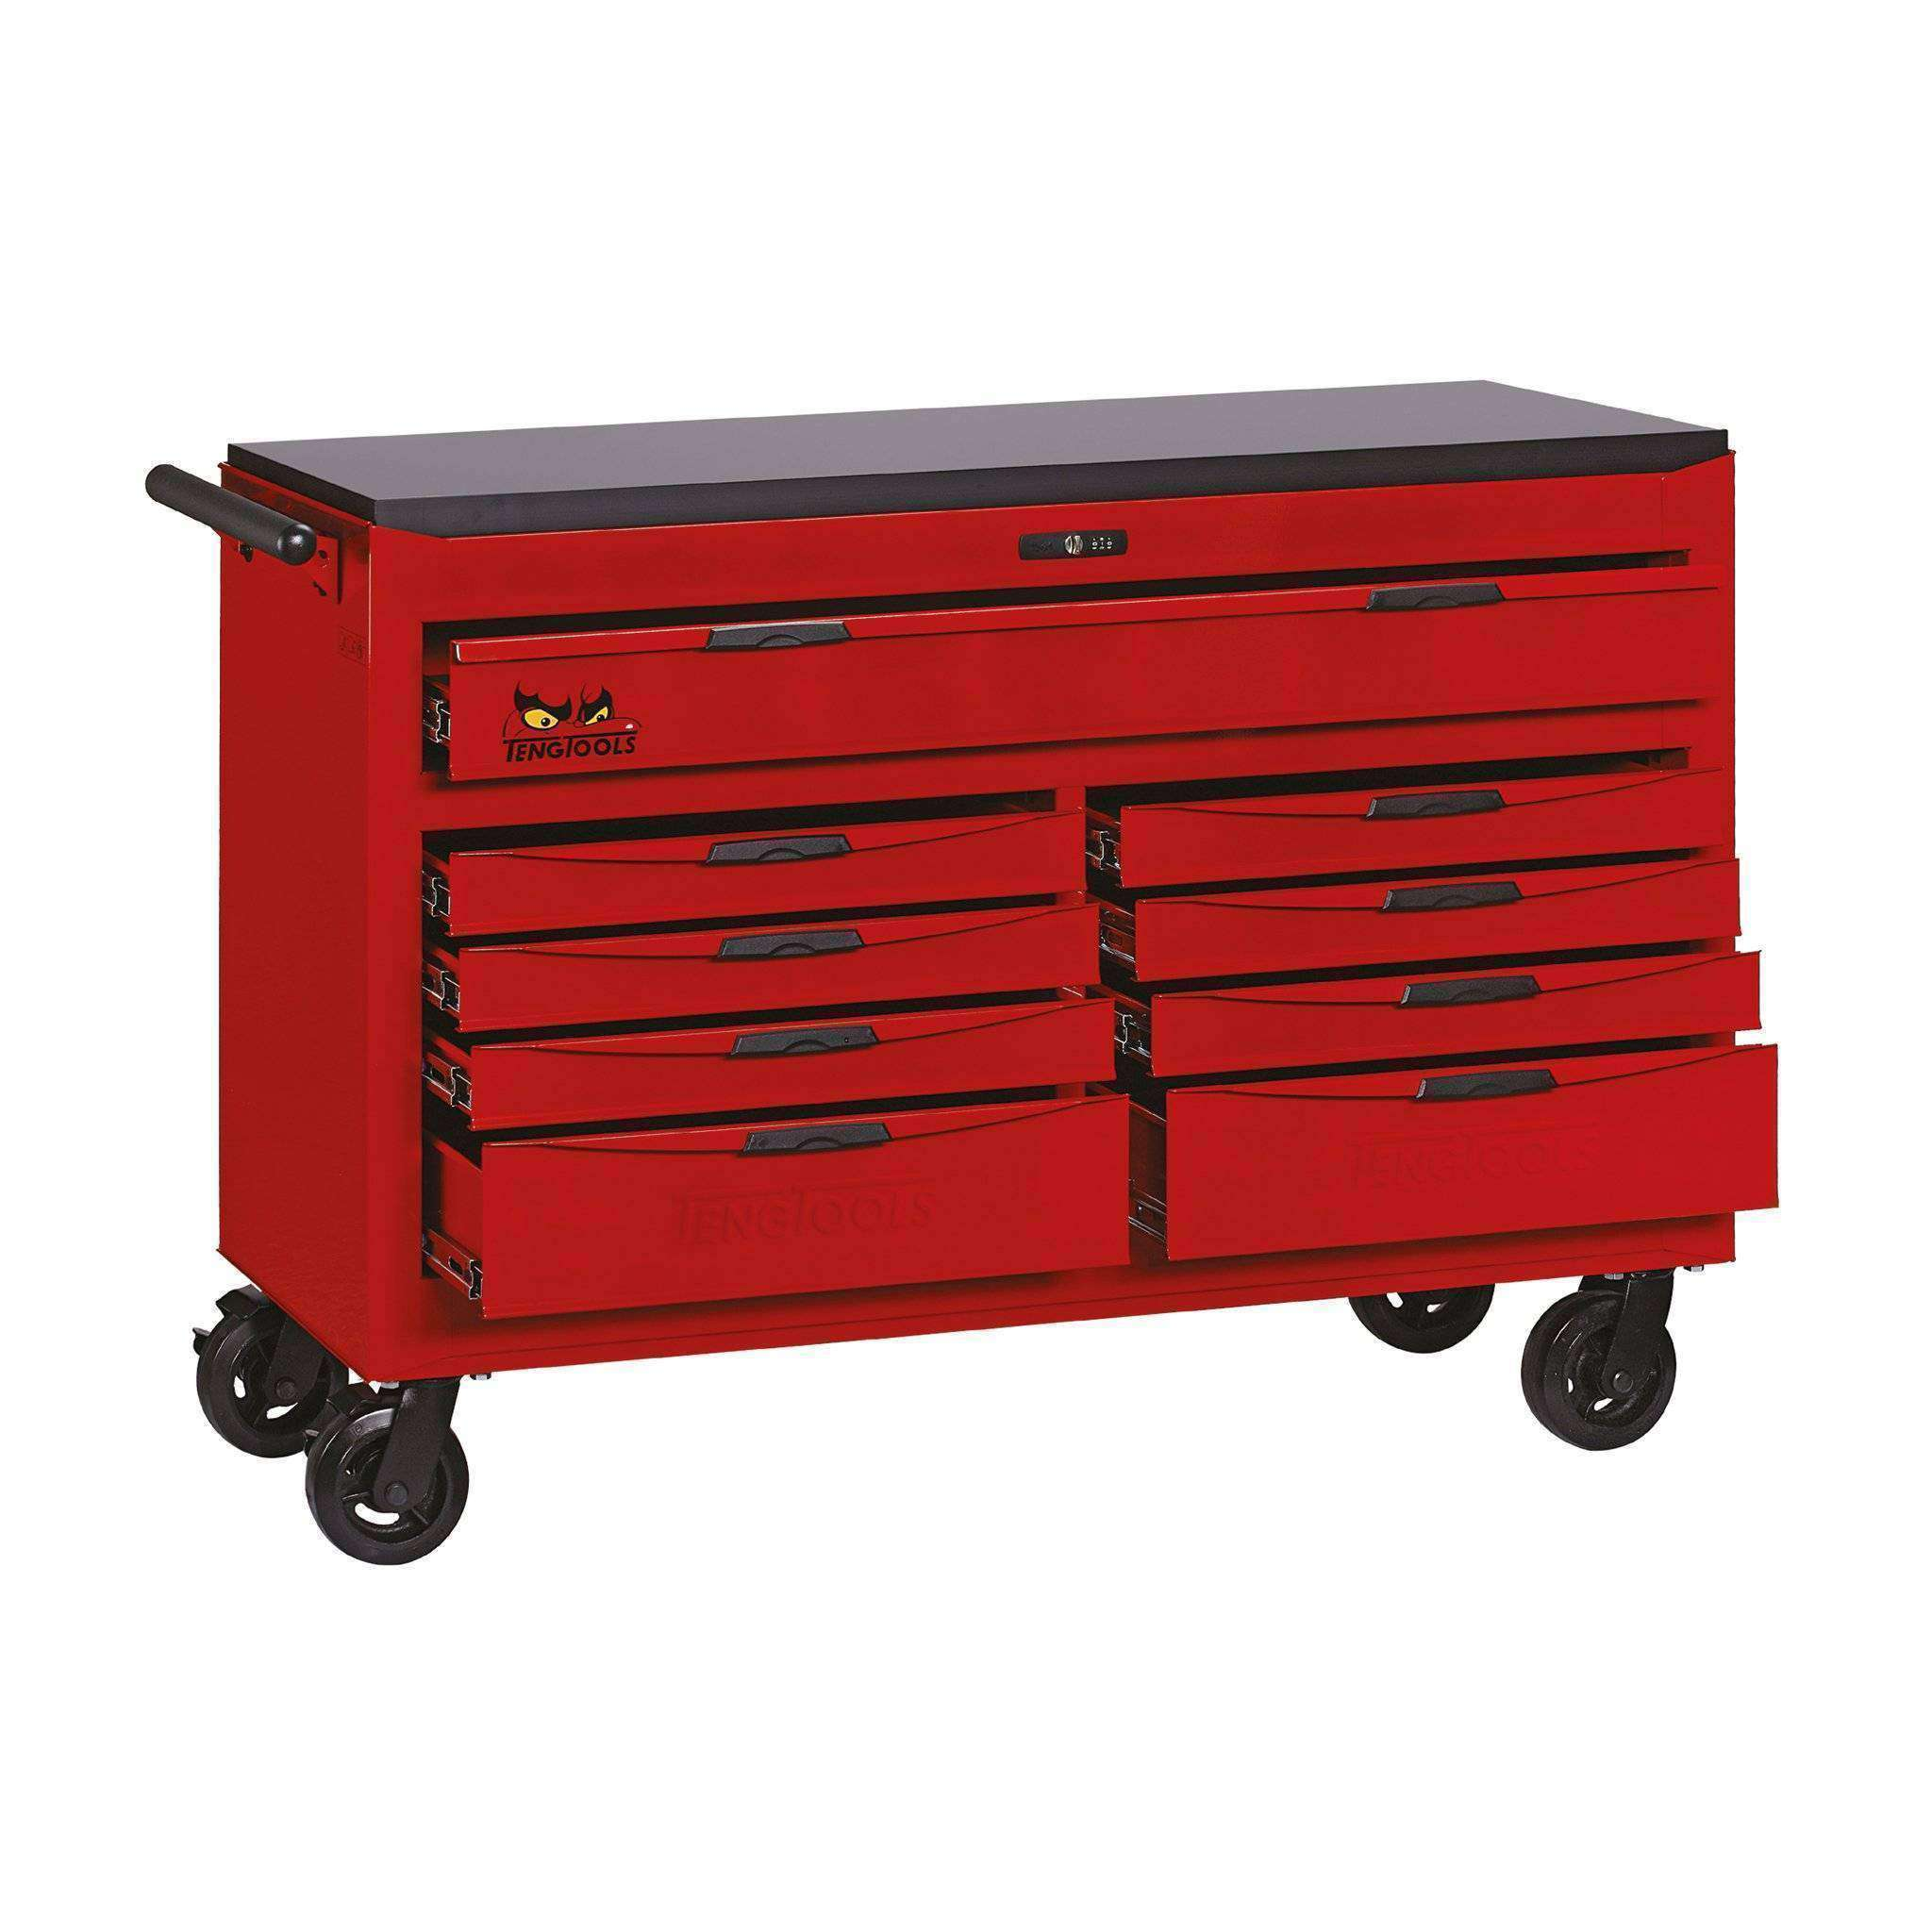 Well-liked Teng Tools TCW809N - 53 inch Wide 9 Drawer 8 Series Roller Cabinet JK75